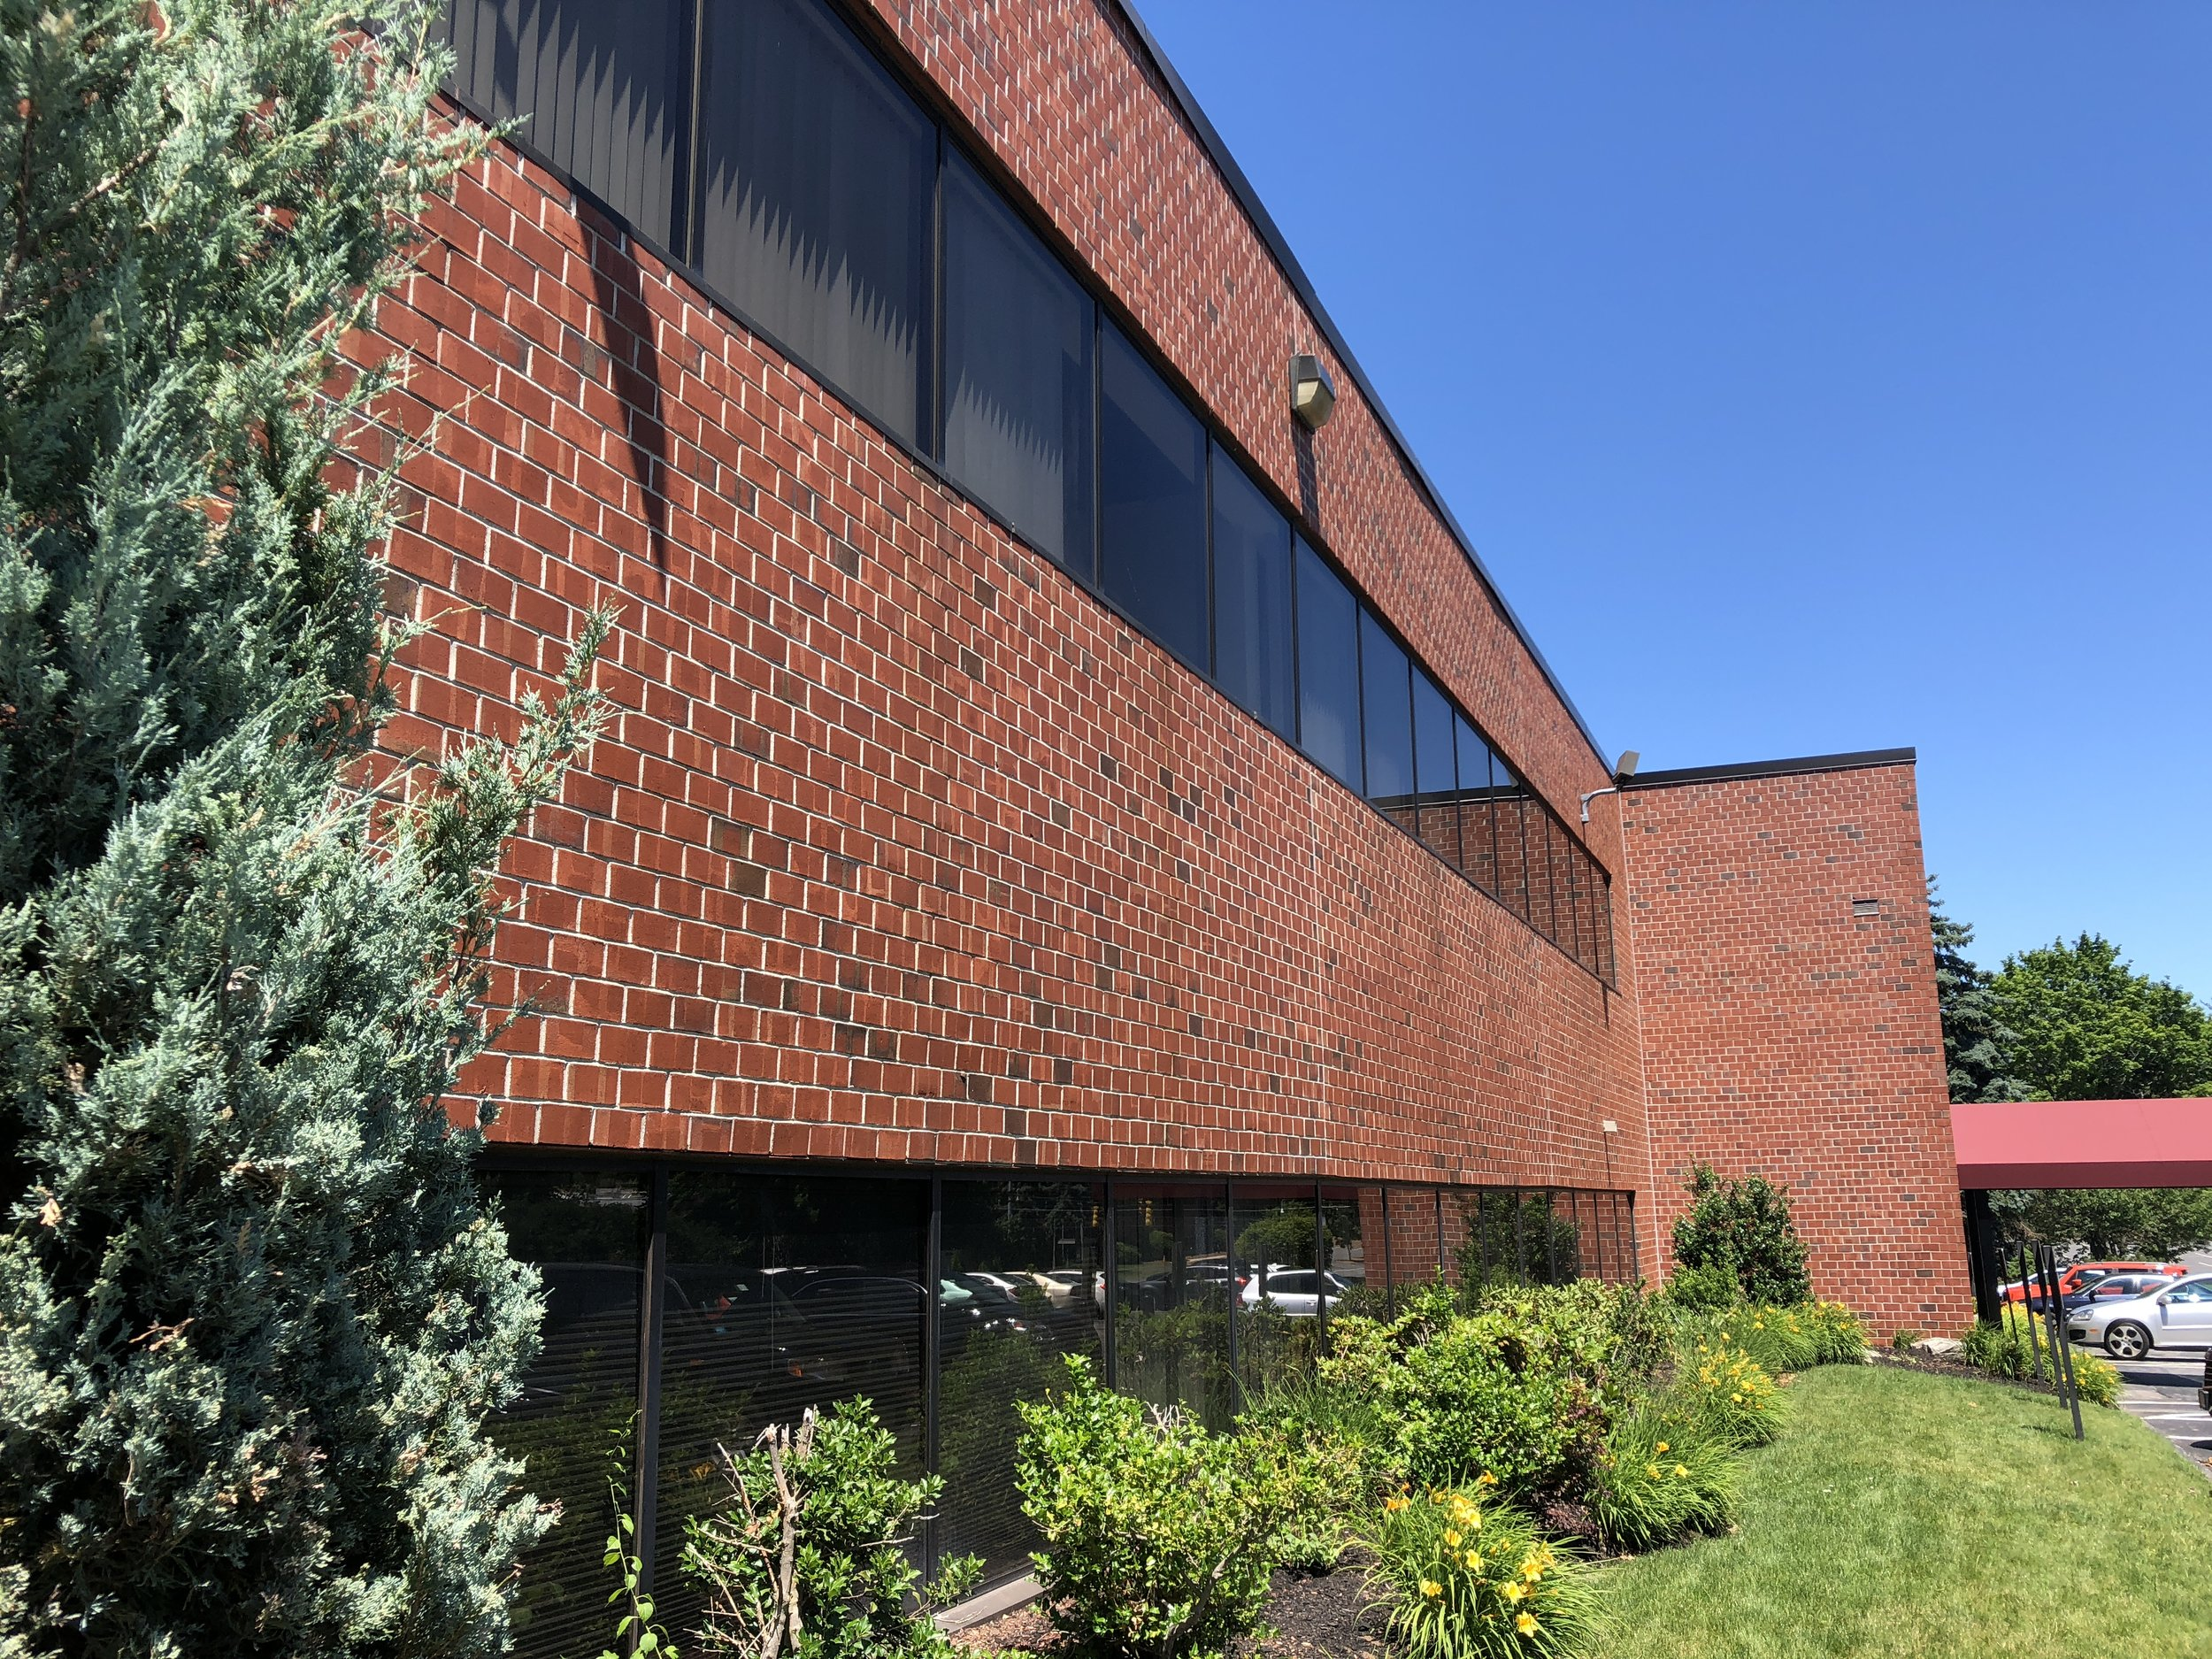 It was a perfect day at 321 Billerica Road, Chelmsford, at our Chelmsford OfficeLink location!